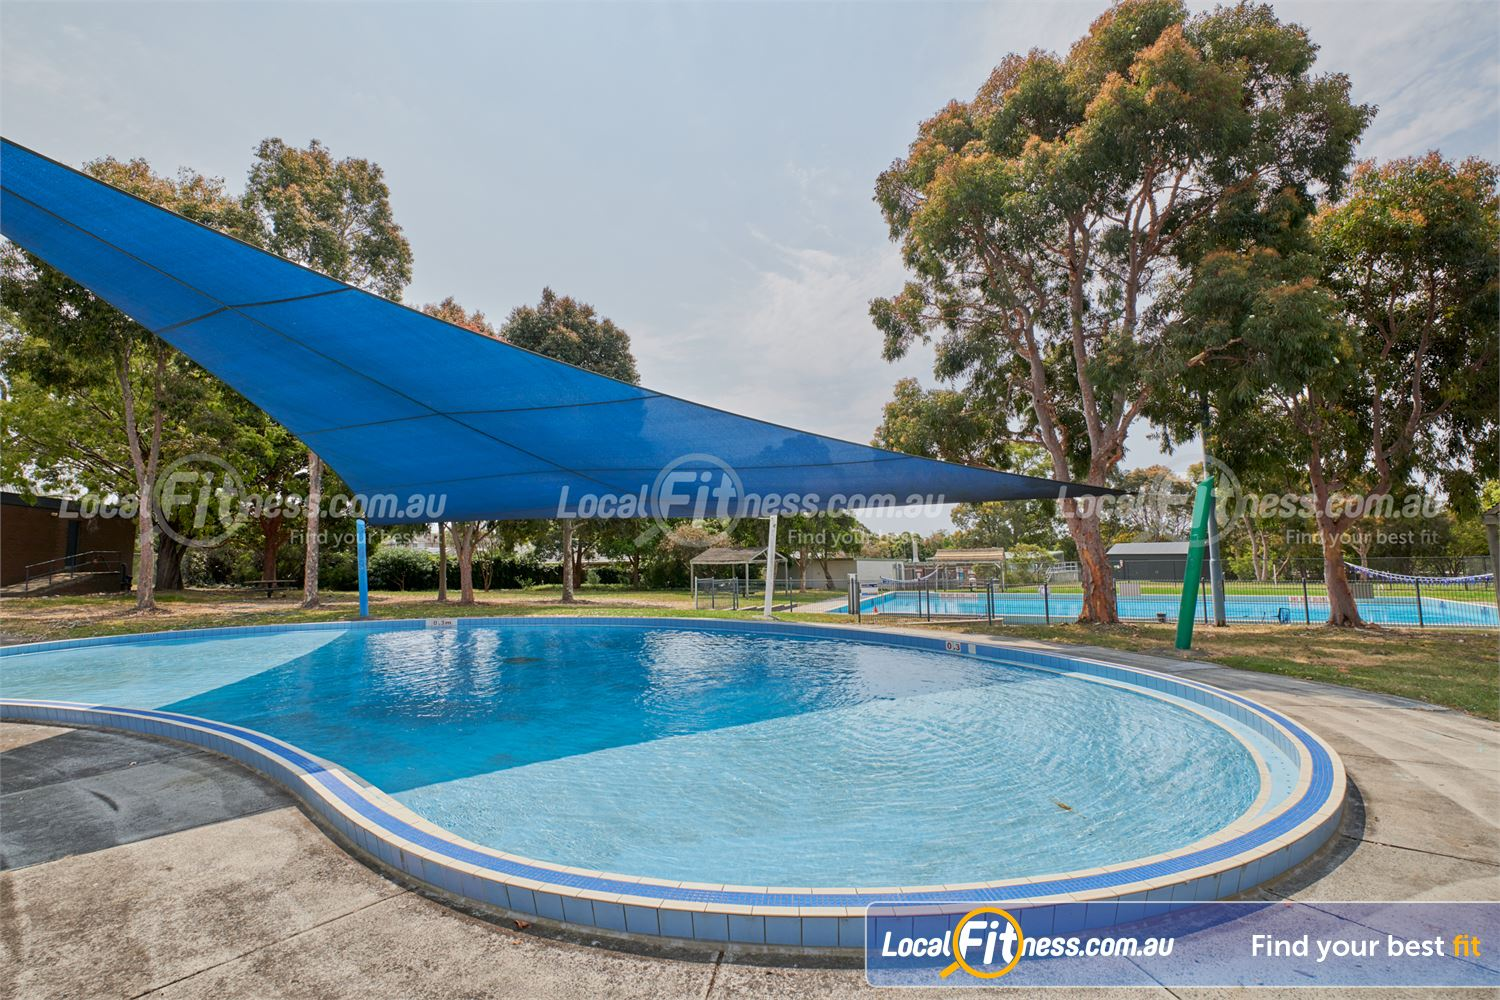 Knox Leisureworks Boronia Outdoor fun for the kiddies with our outdoor toddler pool.